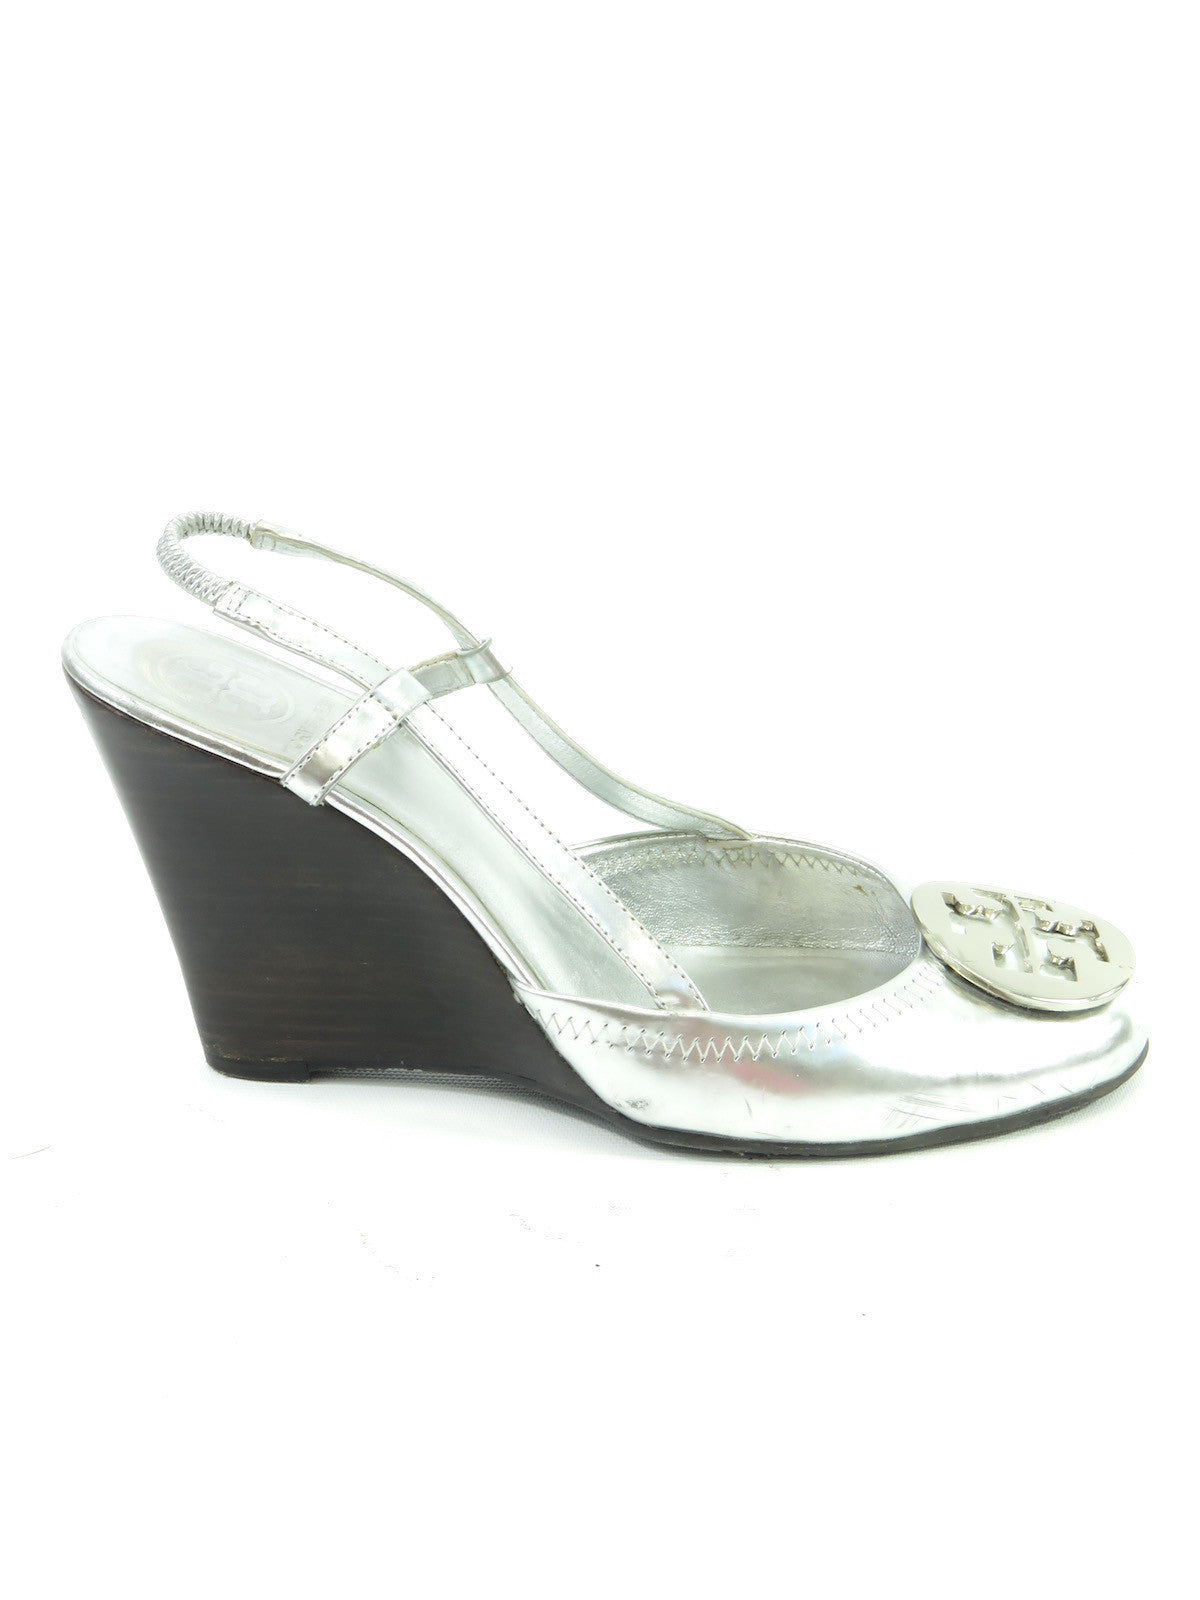 c3bdafda06462c TORY BURCH Women Silver Leather LOGO Wedge Slingback Pumps Shoes 8